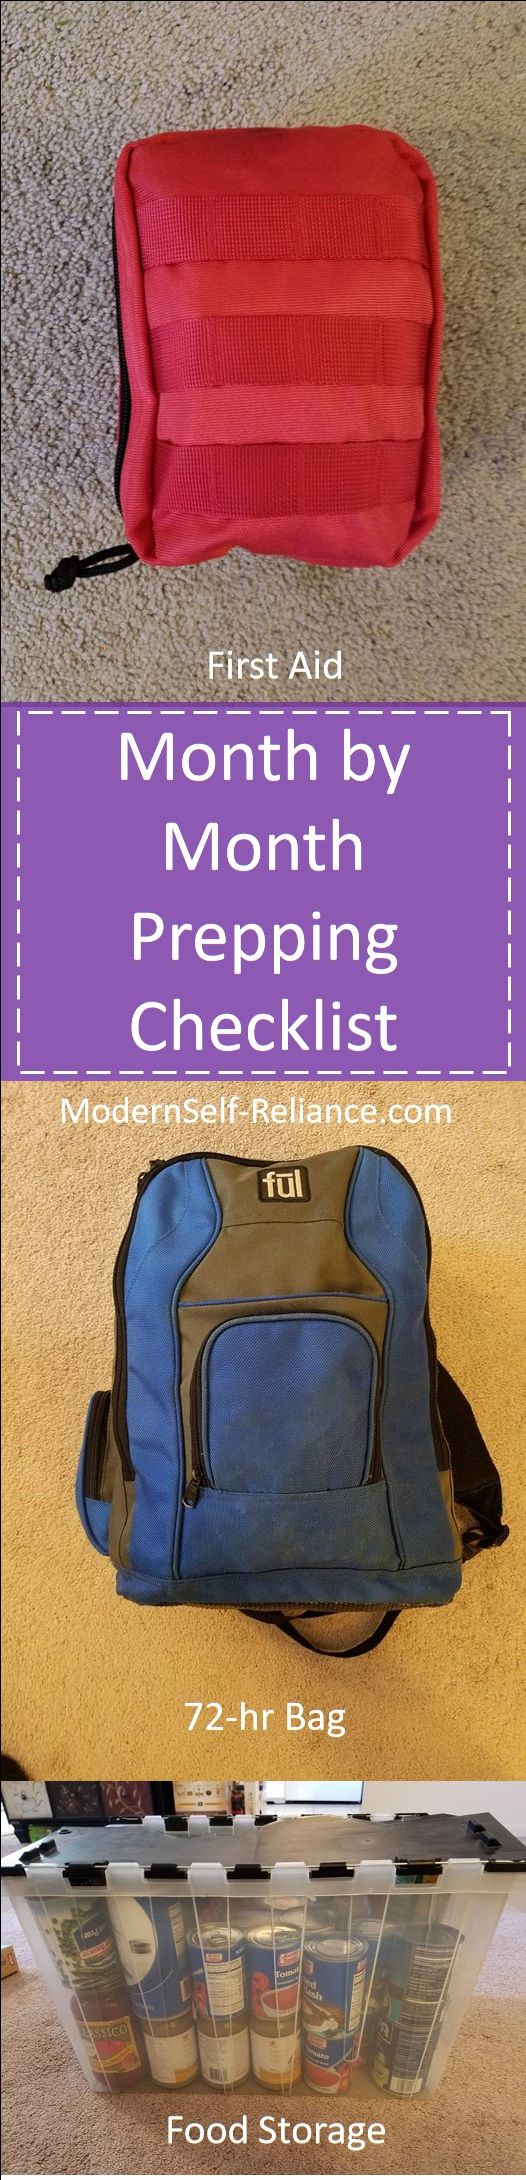 Month to Month guide for checking your preparedness items. First Aid Kit, 72-hr bag, food storage, water storage.